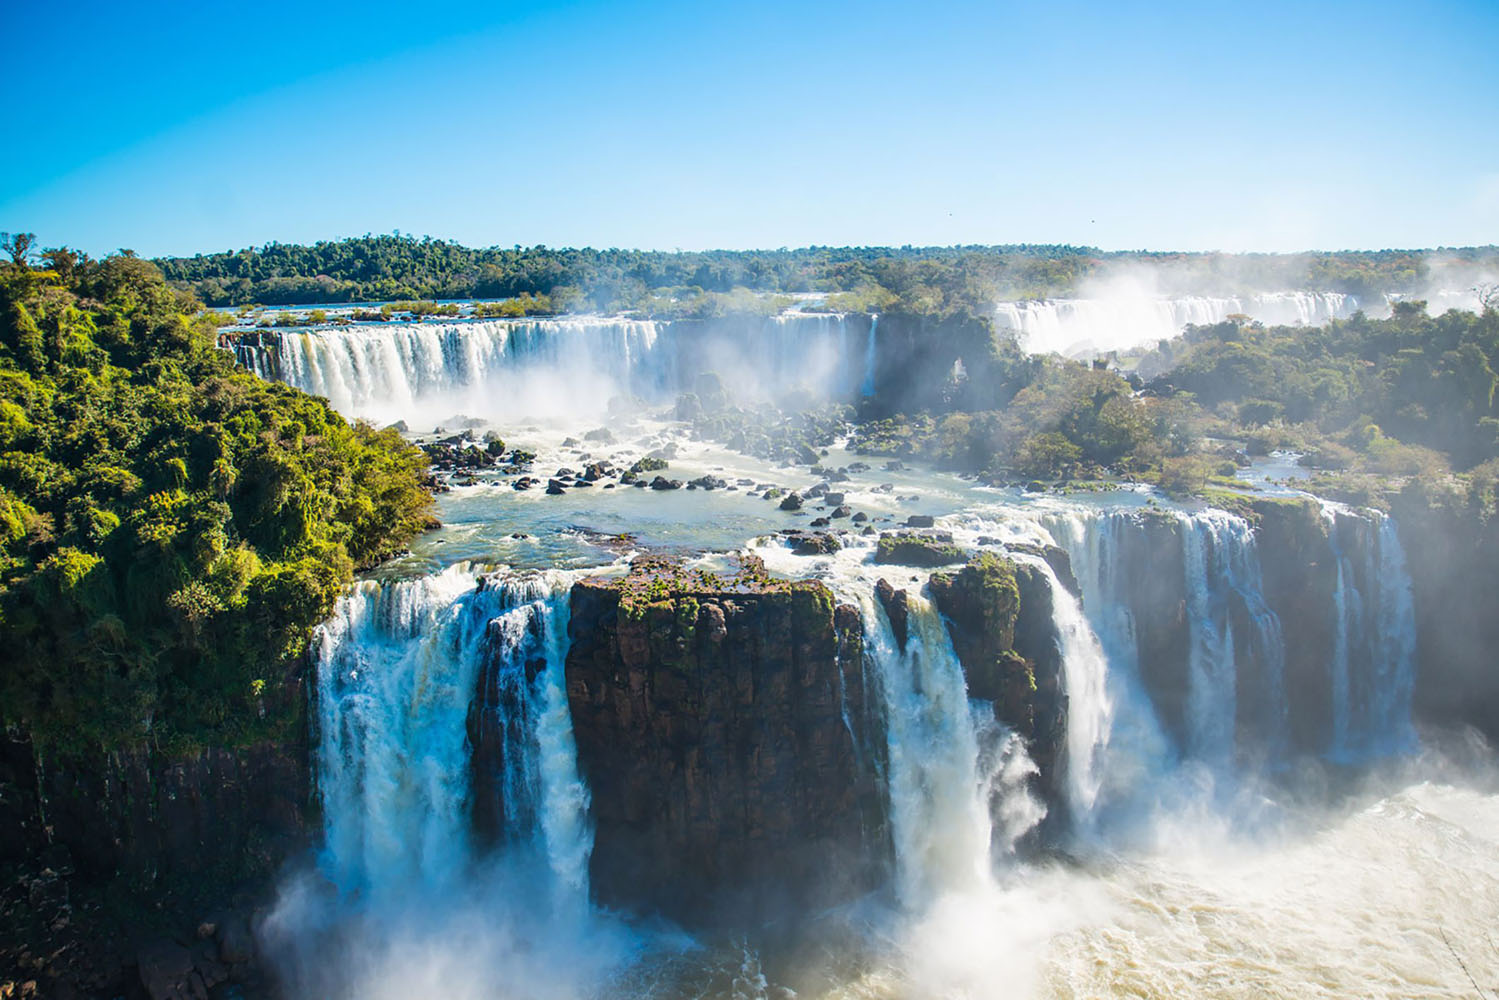 Iguazu Falls and Devil's Throat